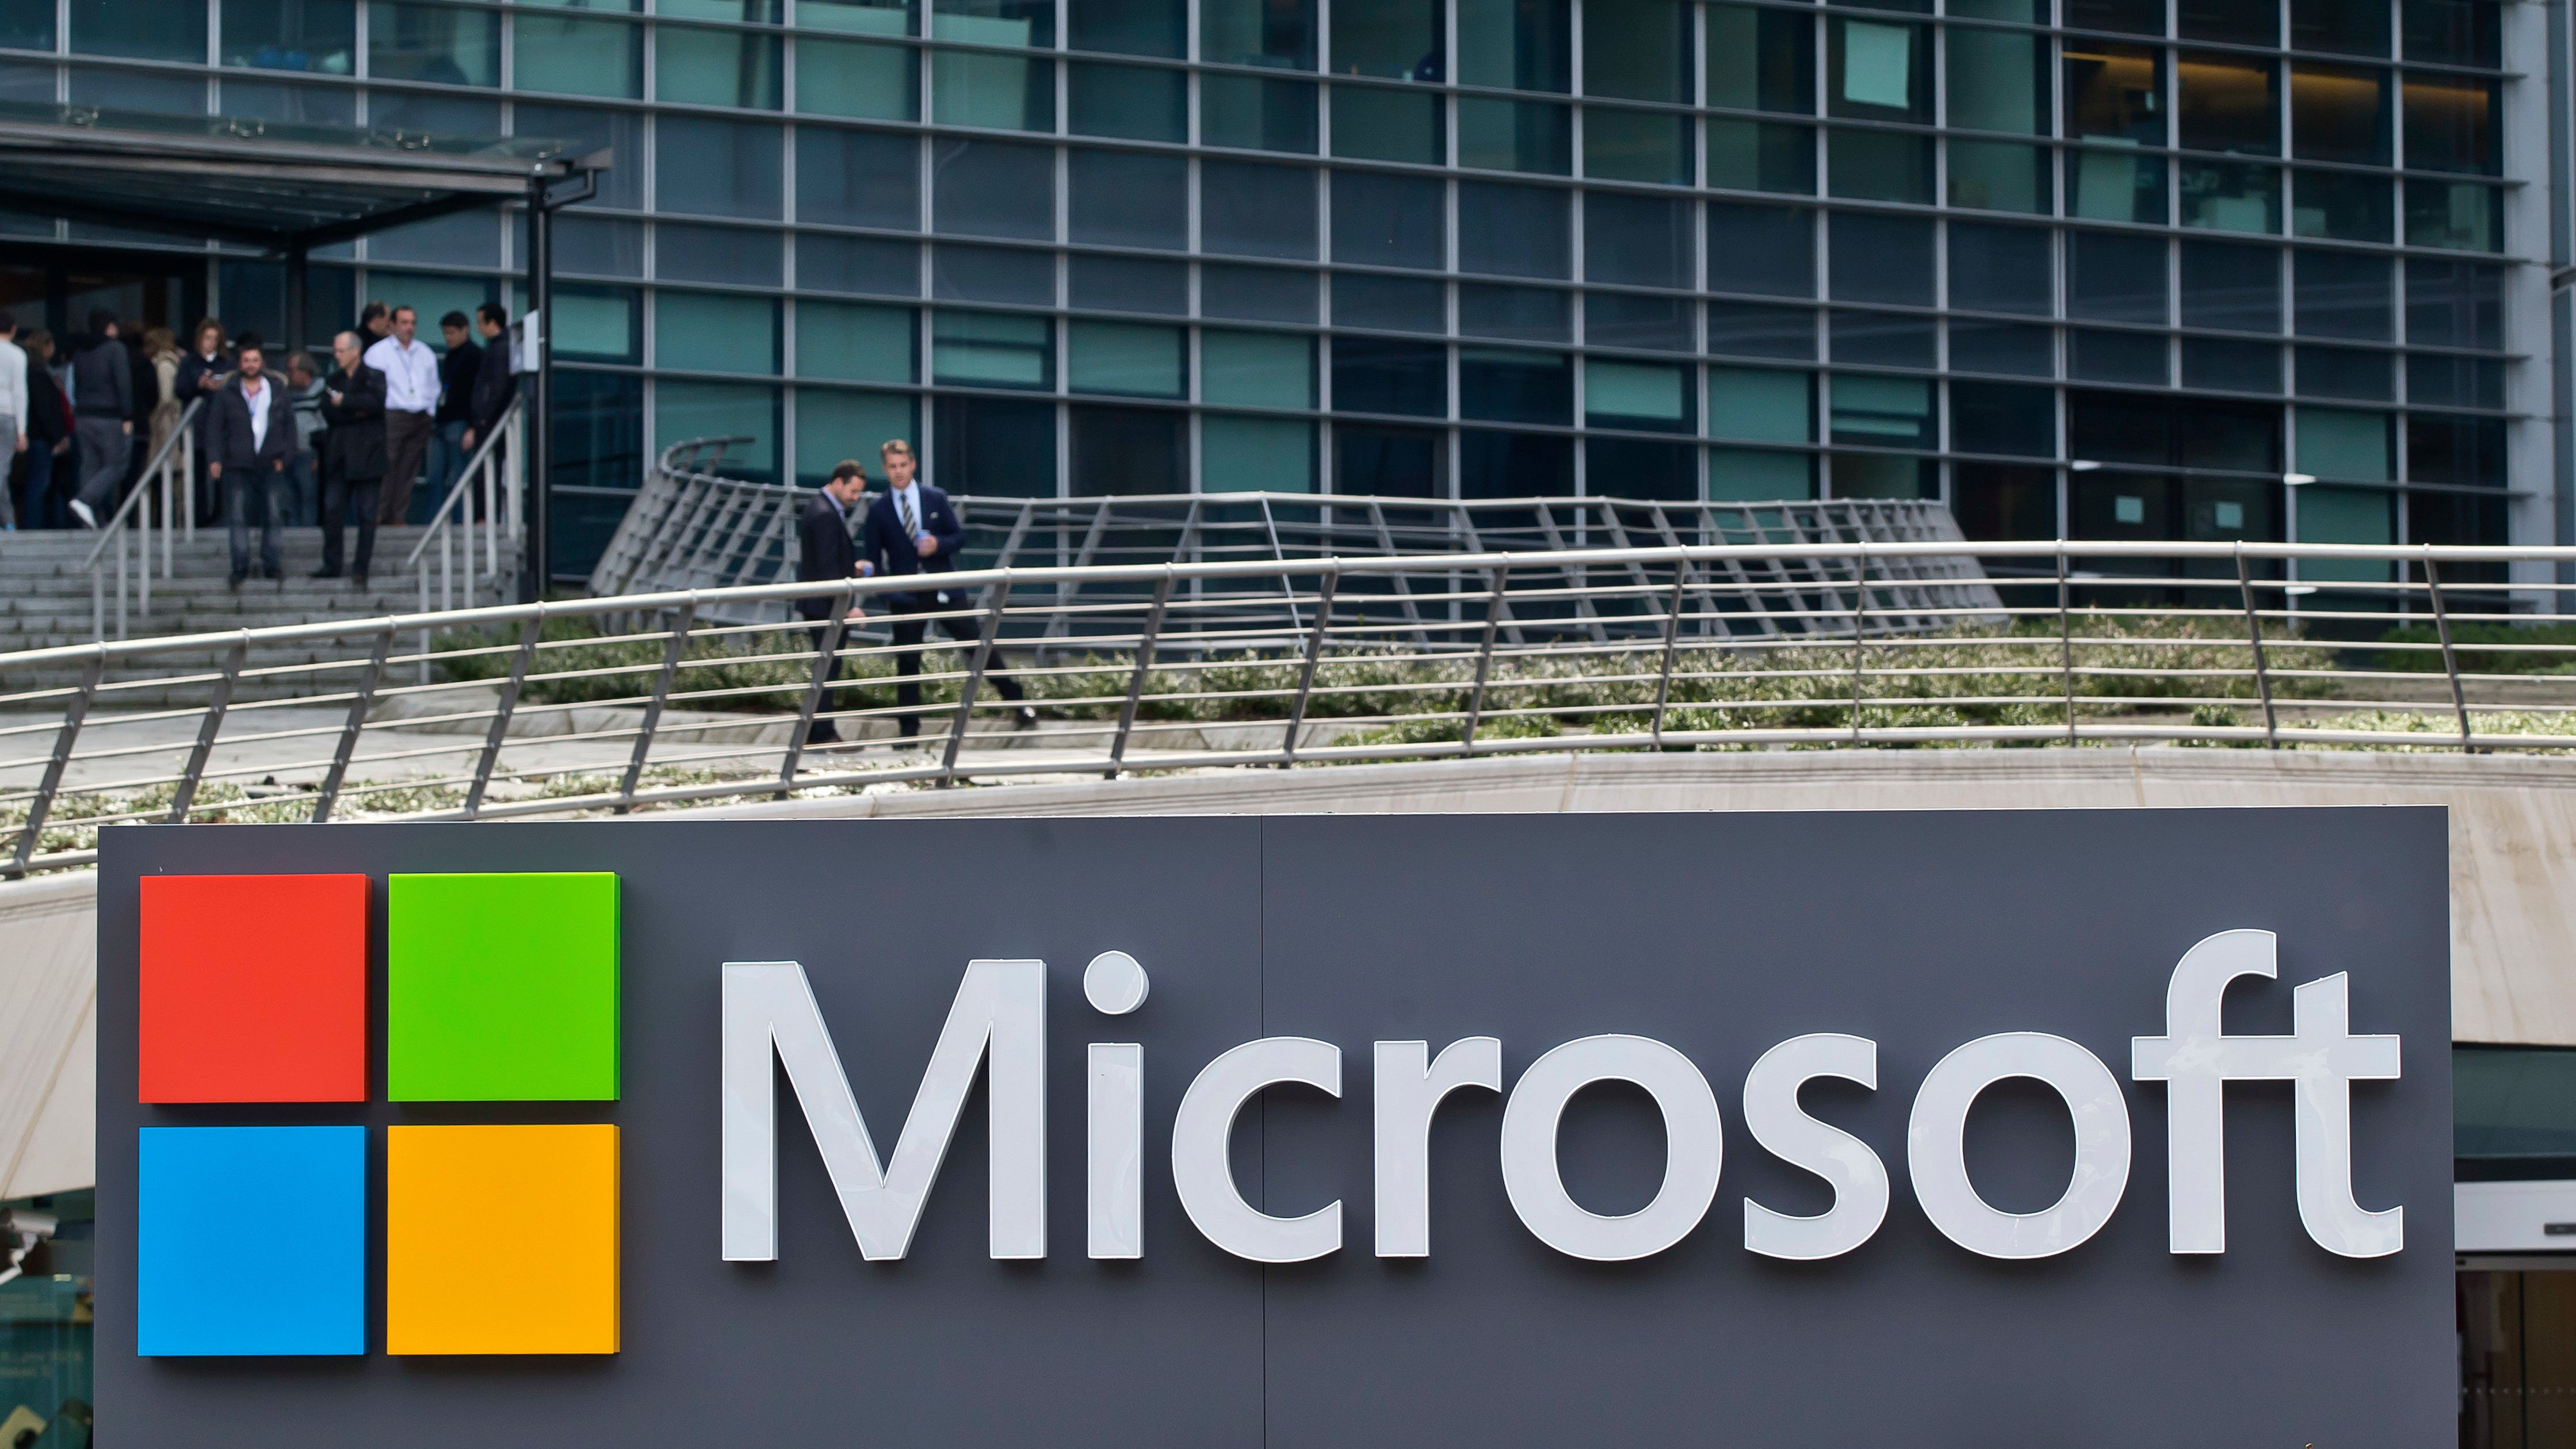 Microsoft Pats Itself On Back For Some Pretty Weak Climate Pledges